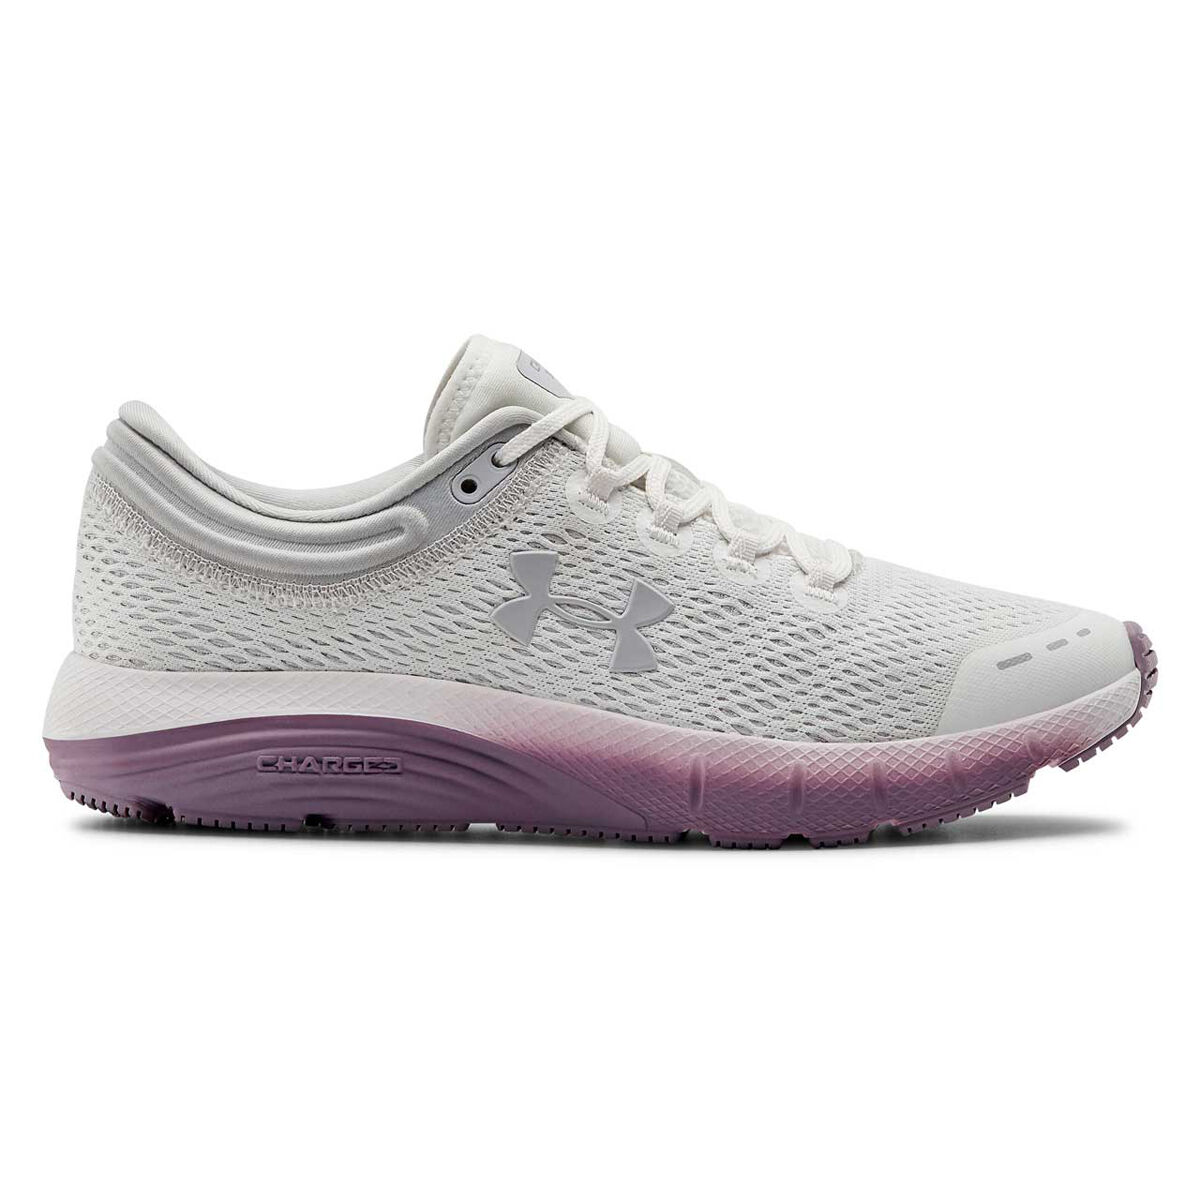 Under Armour Charged Bandit 5 Womens